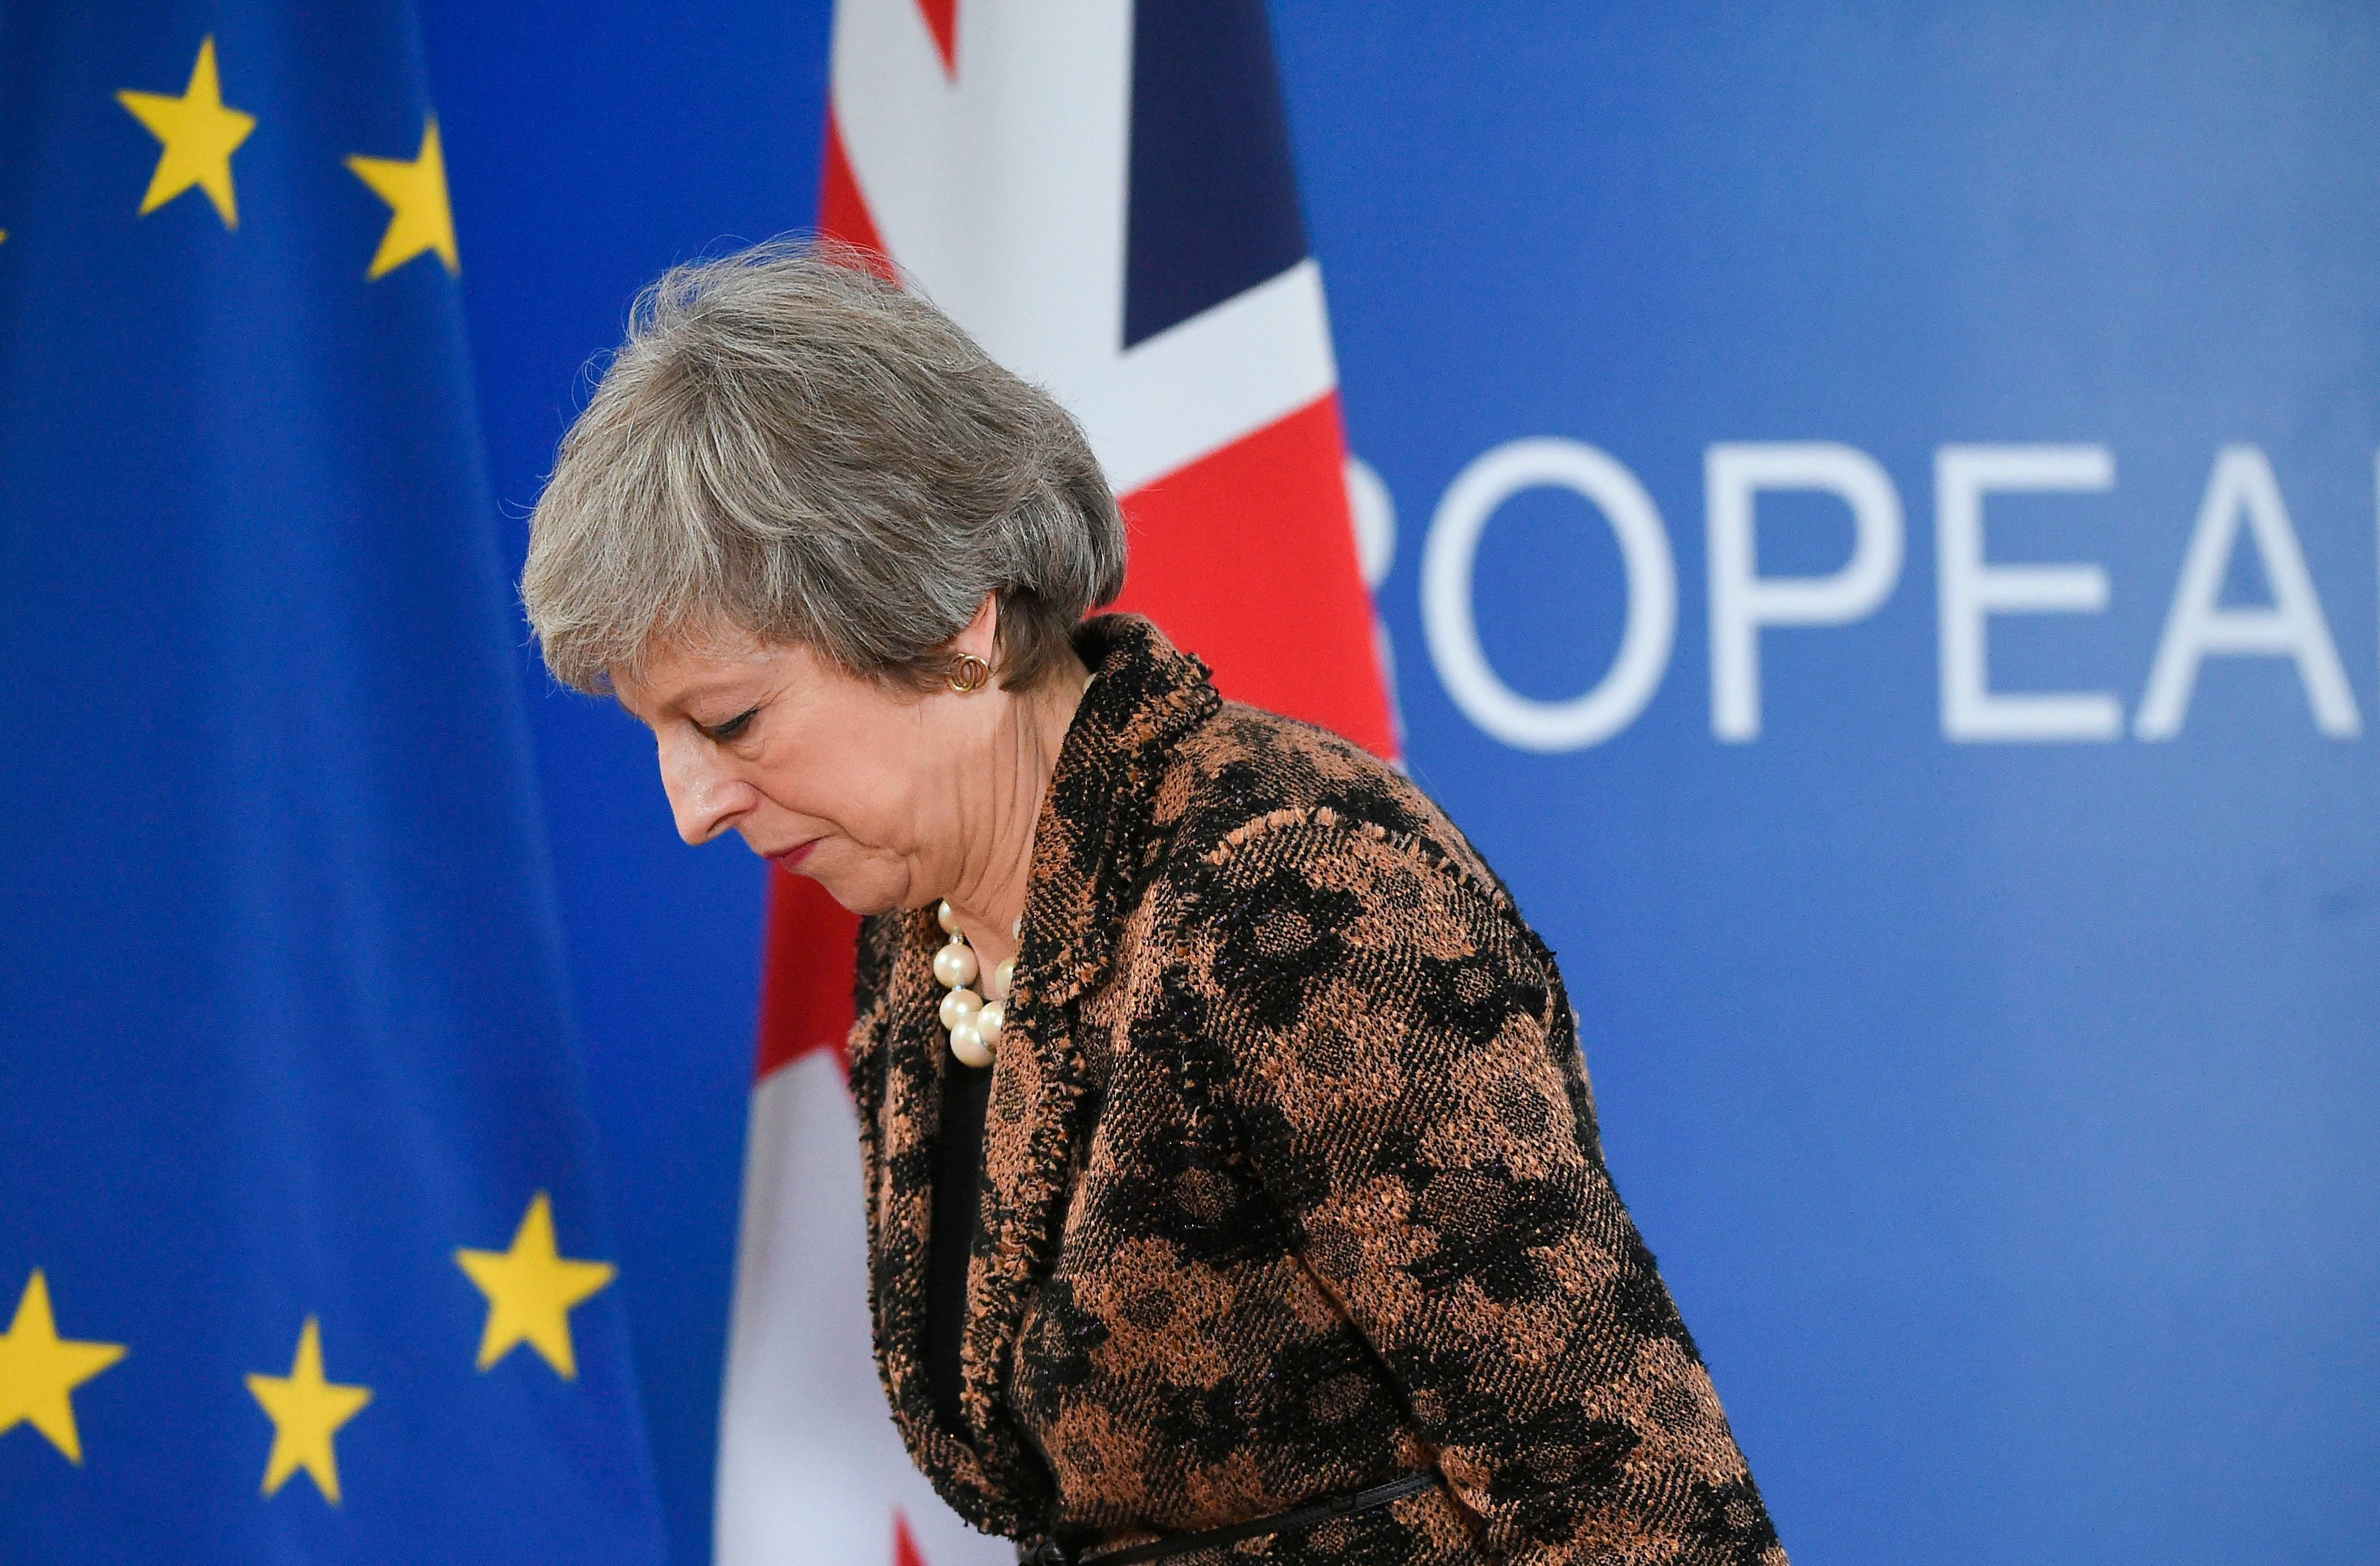 TOPSHOT - Britain's Prime Minister Theresa May leaves after speaking during a press conference on December 14, 2018 in Brussels during the second day of a European Summit aimed at discussing the Brexit deal, the long-term budget and the single market. - May says further Brexit talks will take place with EU in coming days, AFP reported on December 14. (Photo by JOHN THYS / AFP)        (Photo credit should read JOHN THYS/AFP/Getty Images)